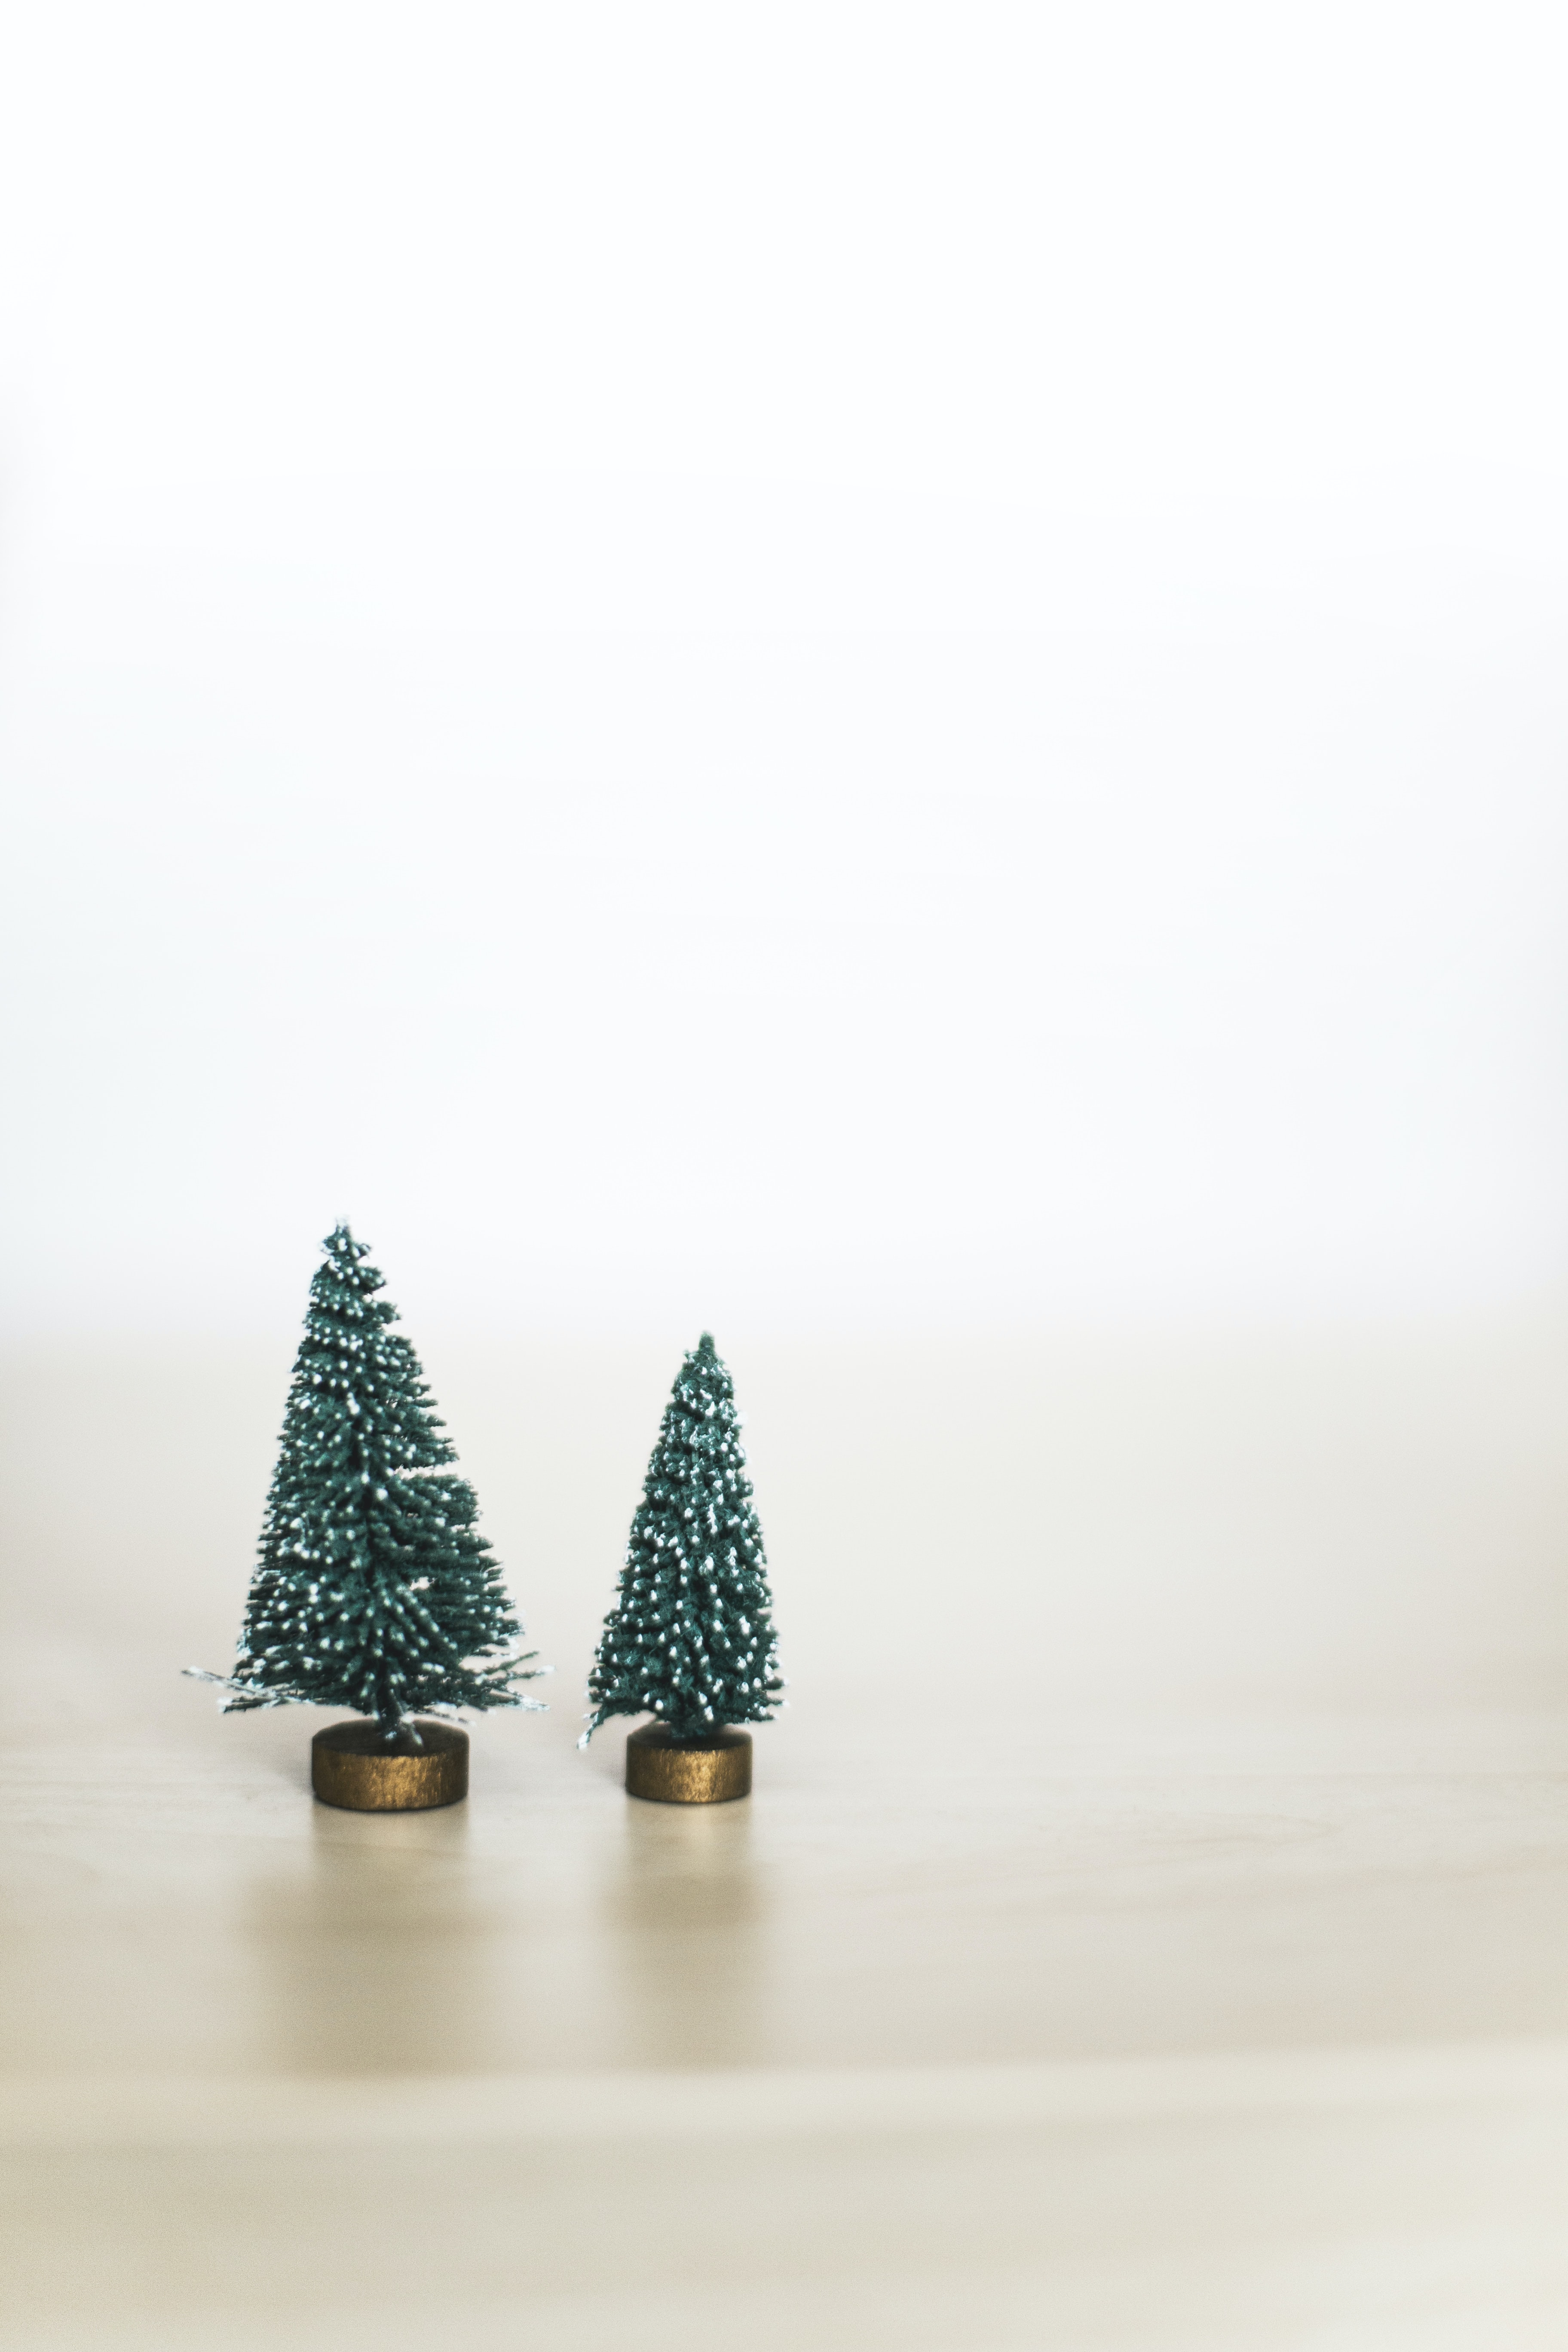 two green pine trees